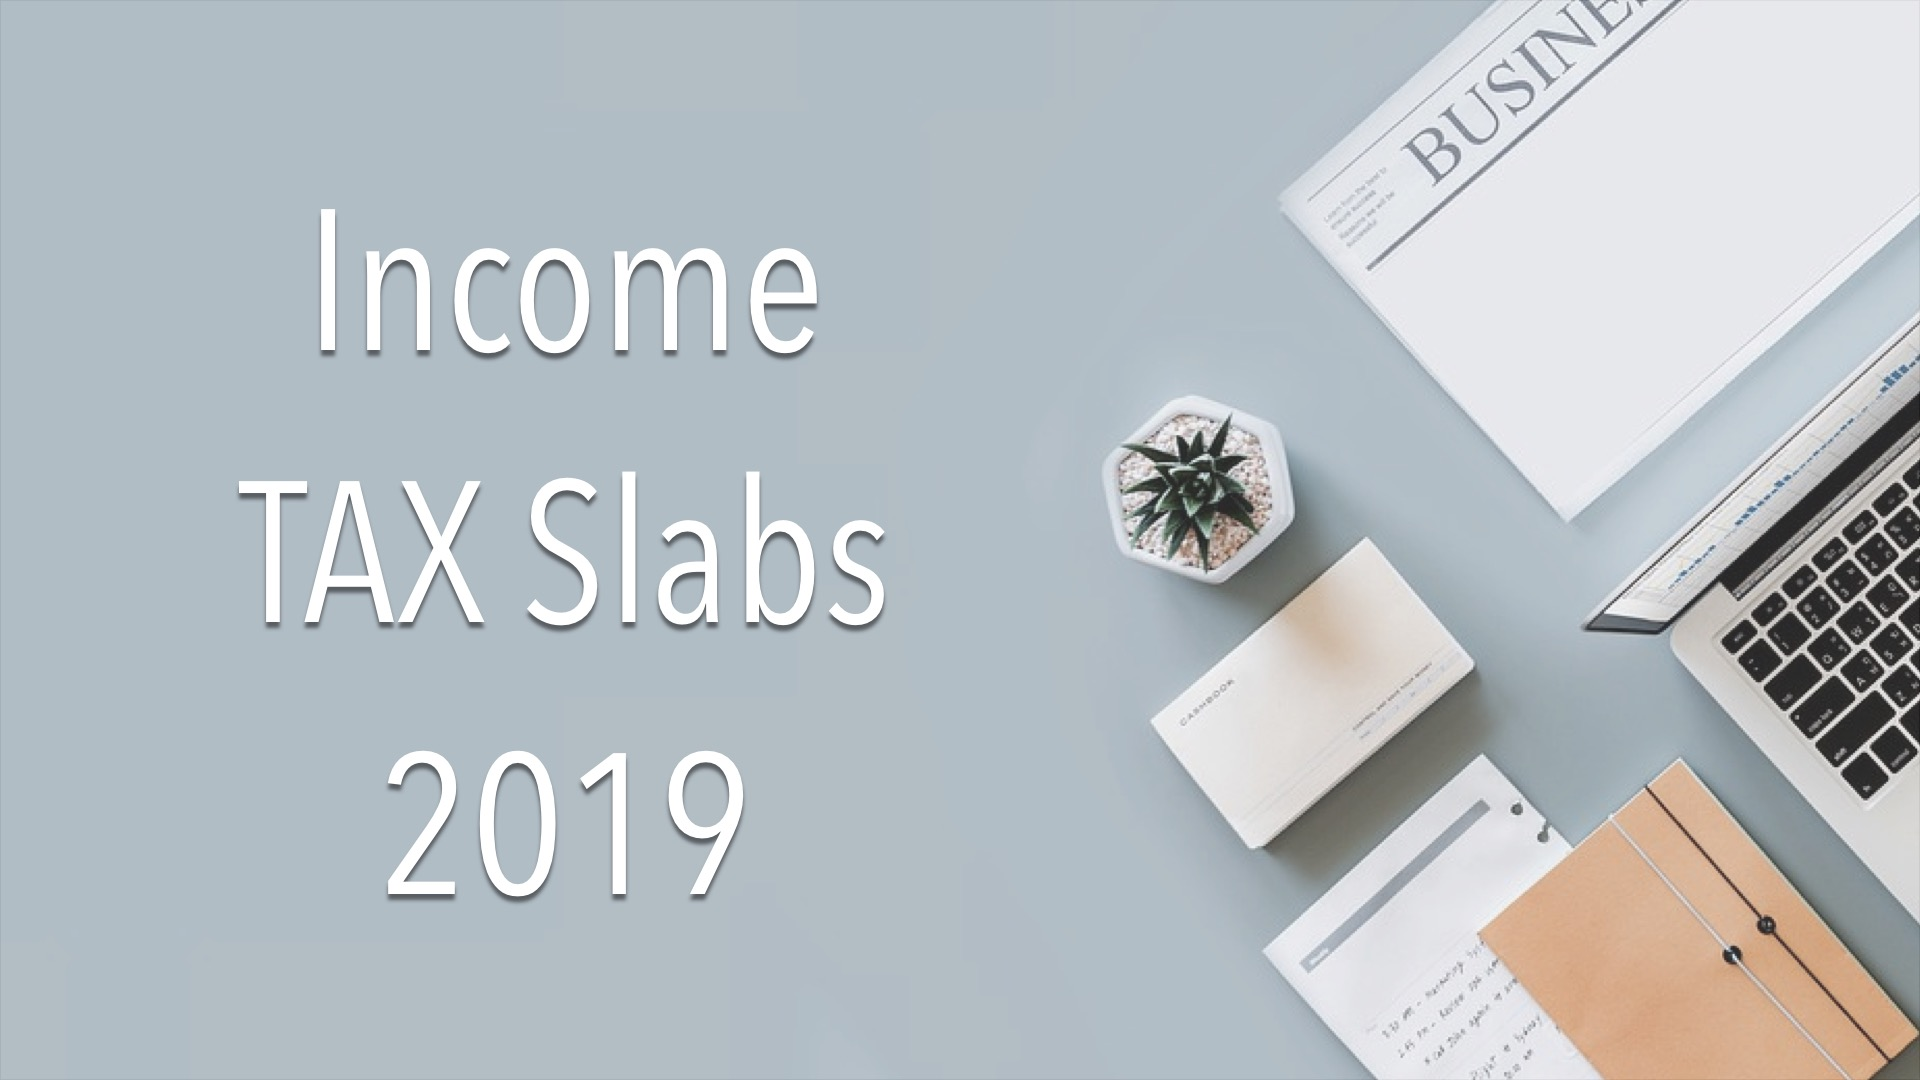 Latest Income Tax Slabs and Rates proposed for the Financial year 2019-20